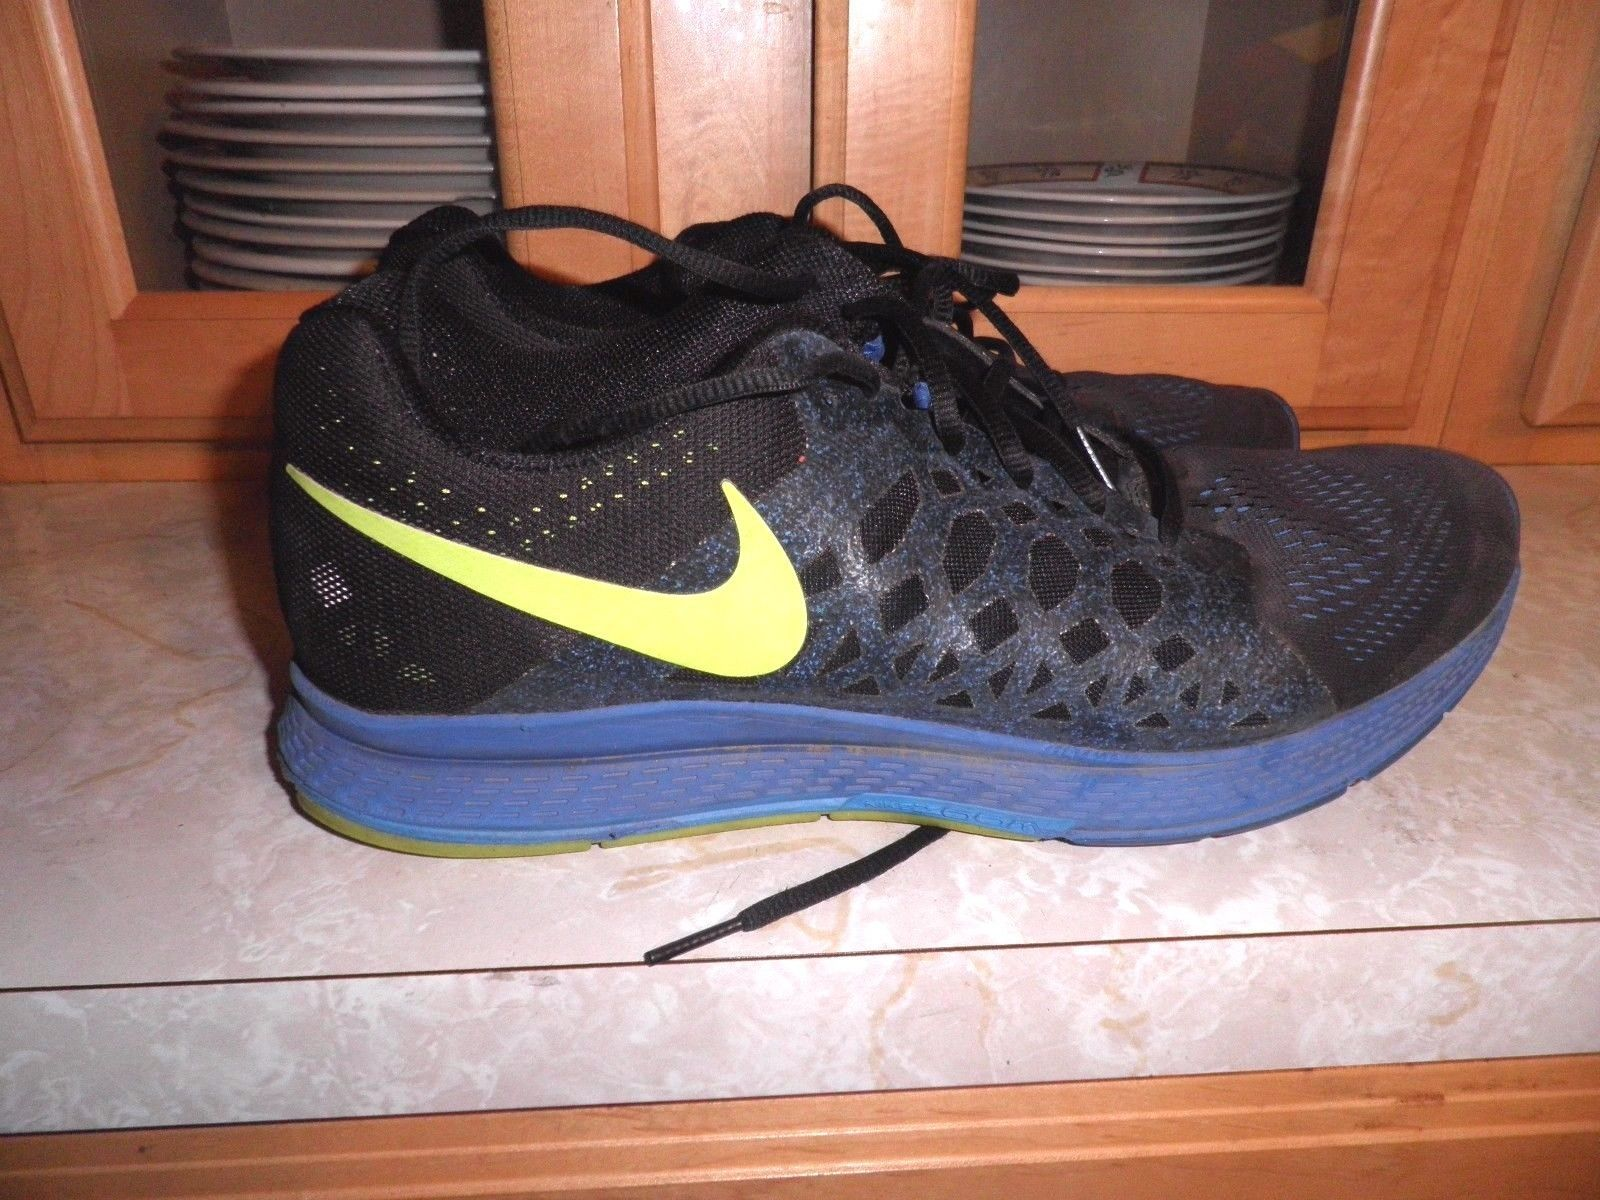 official photos a37ad 13ccd Men's Nike Air Zoom Pegasus 31 Blue Black 652925 002 Size 12 ...